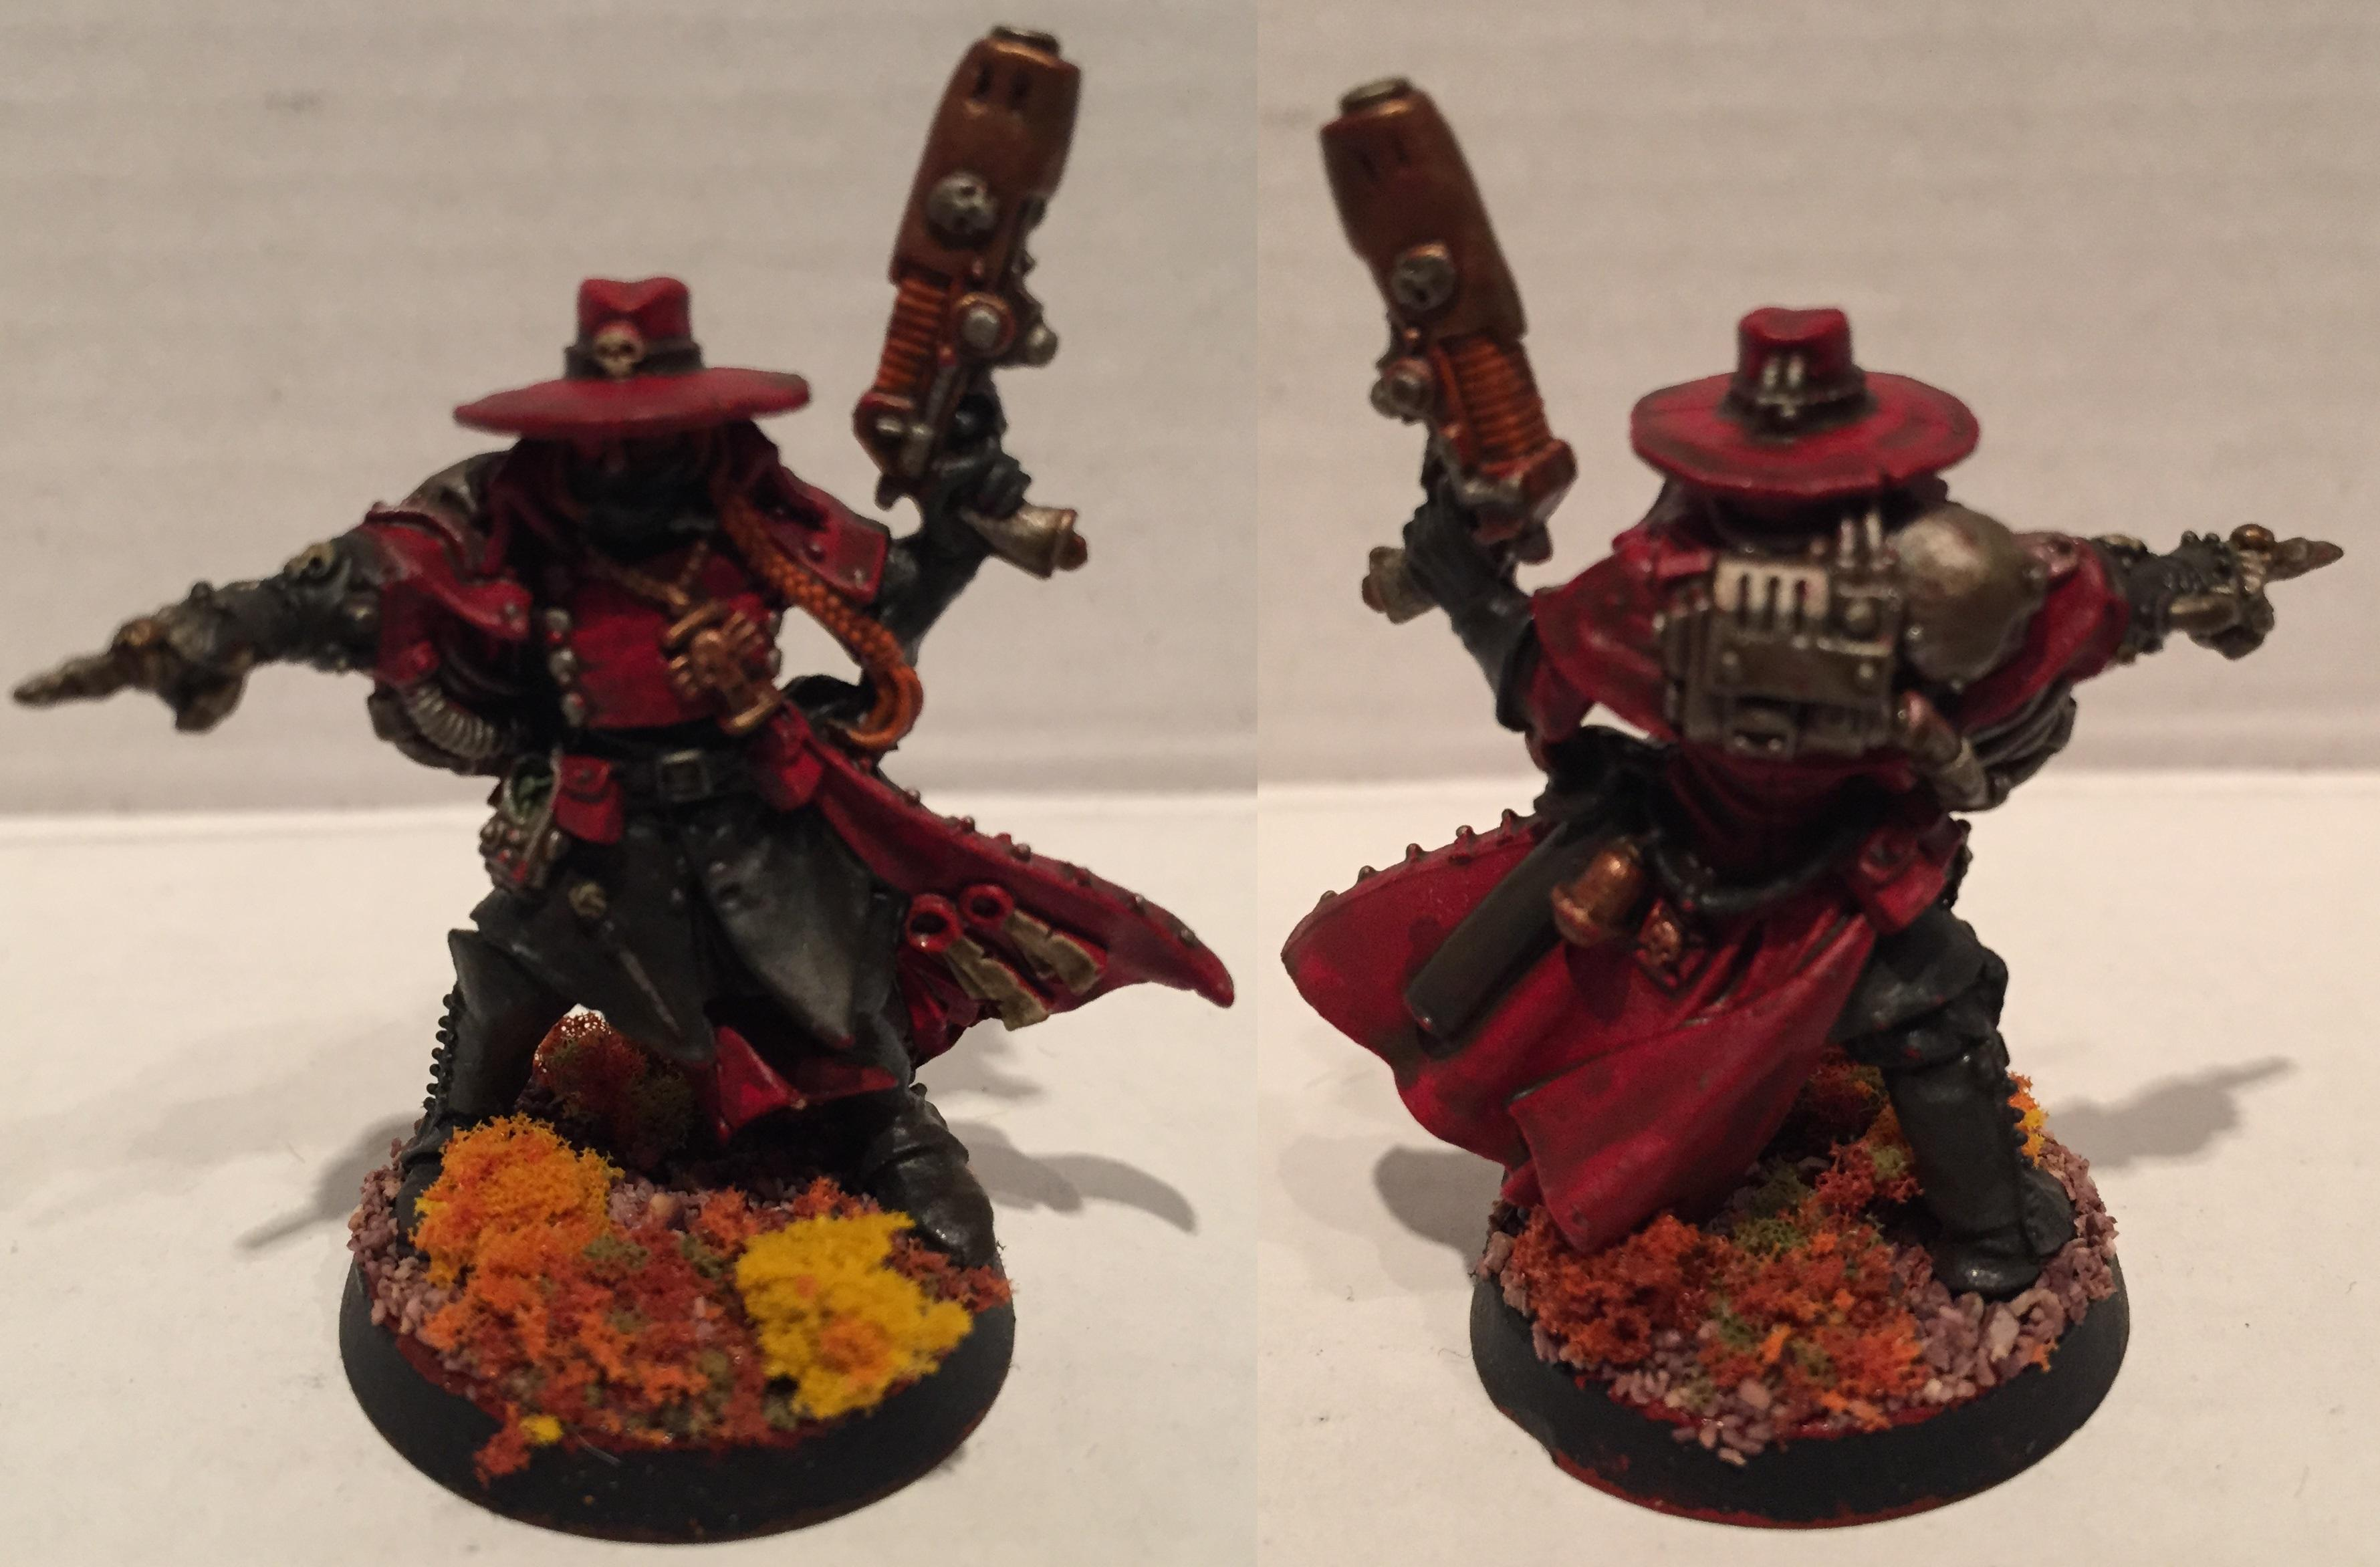 Dipped, Inquisition, Inquisitor, Ordo Xenos, Petrifications, Warhammer 40,000, Washed